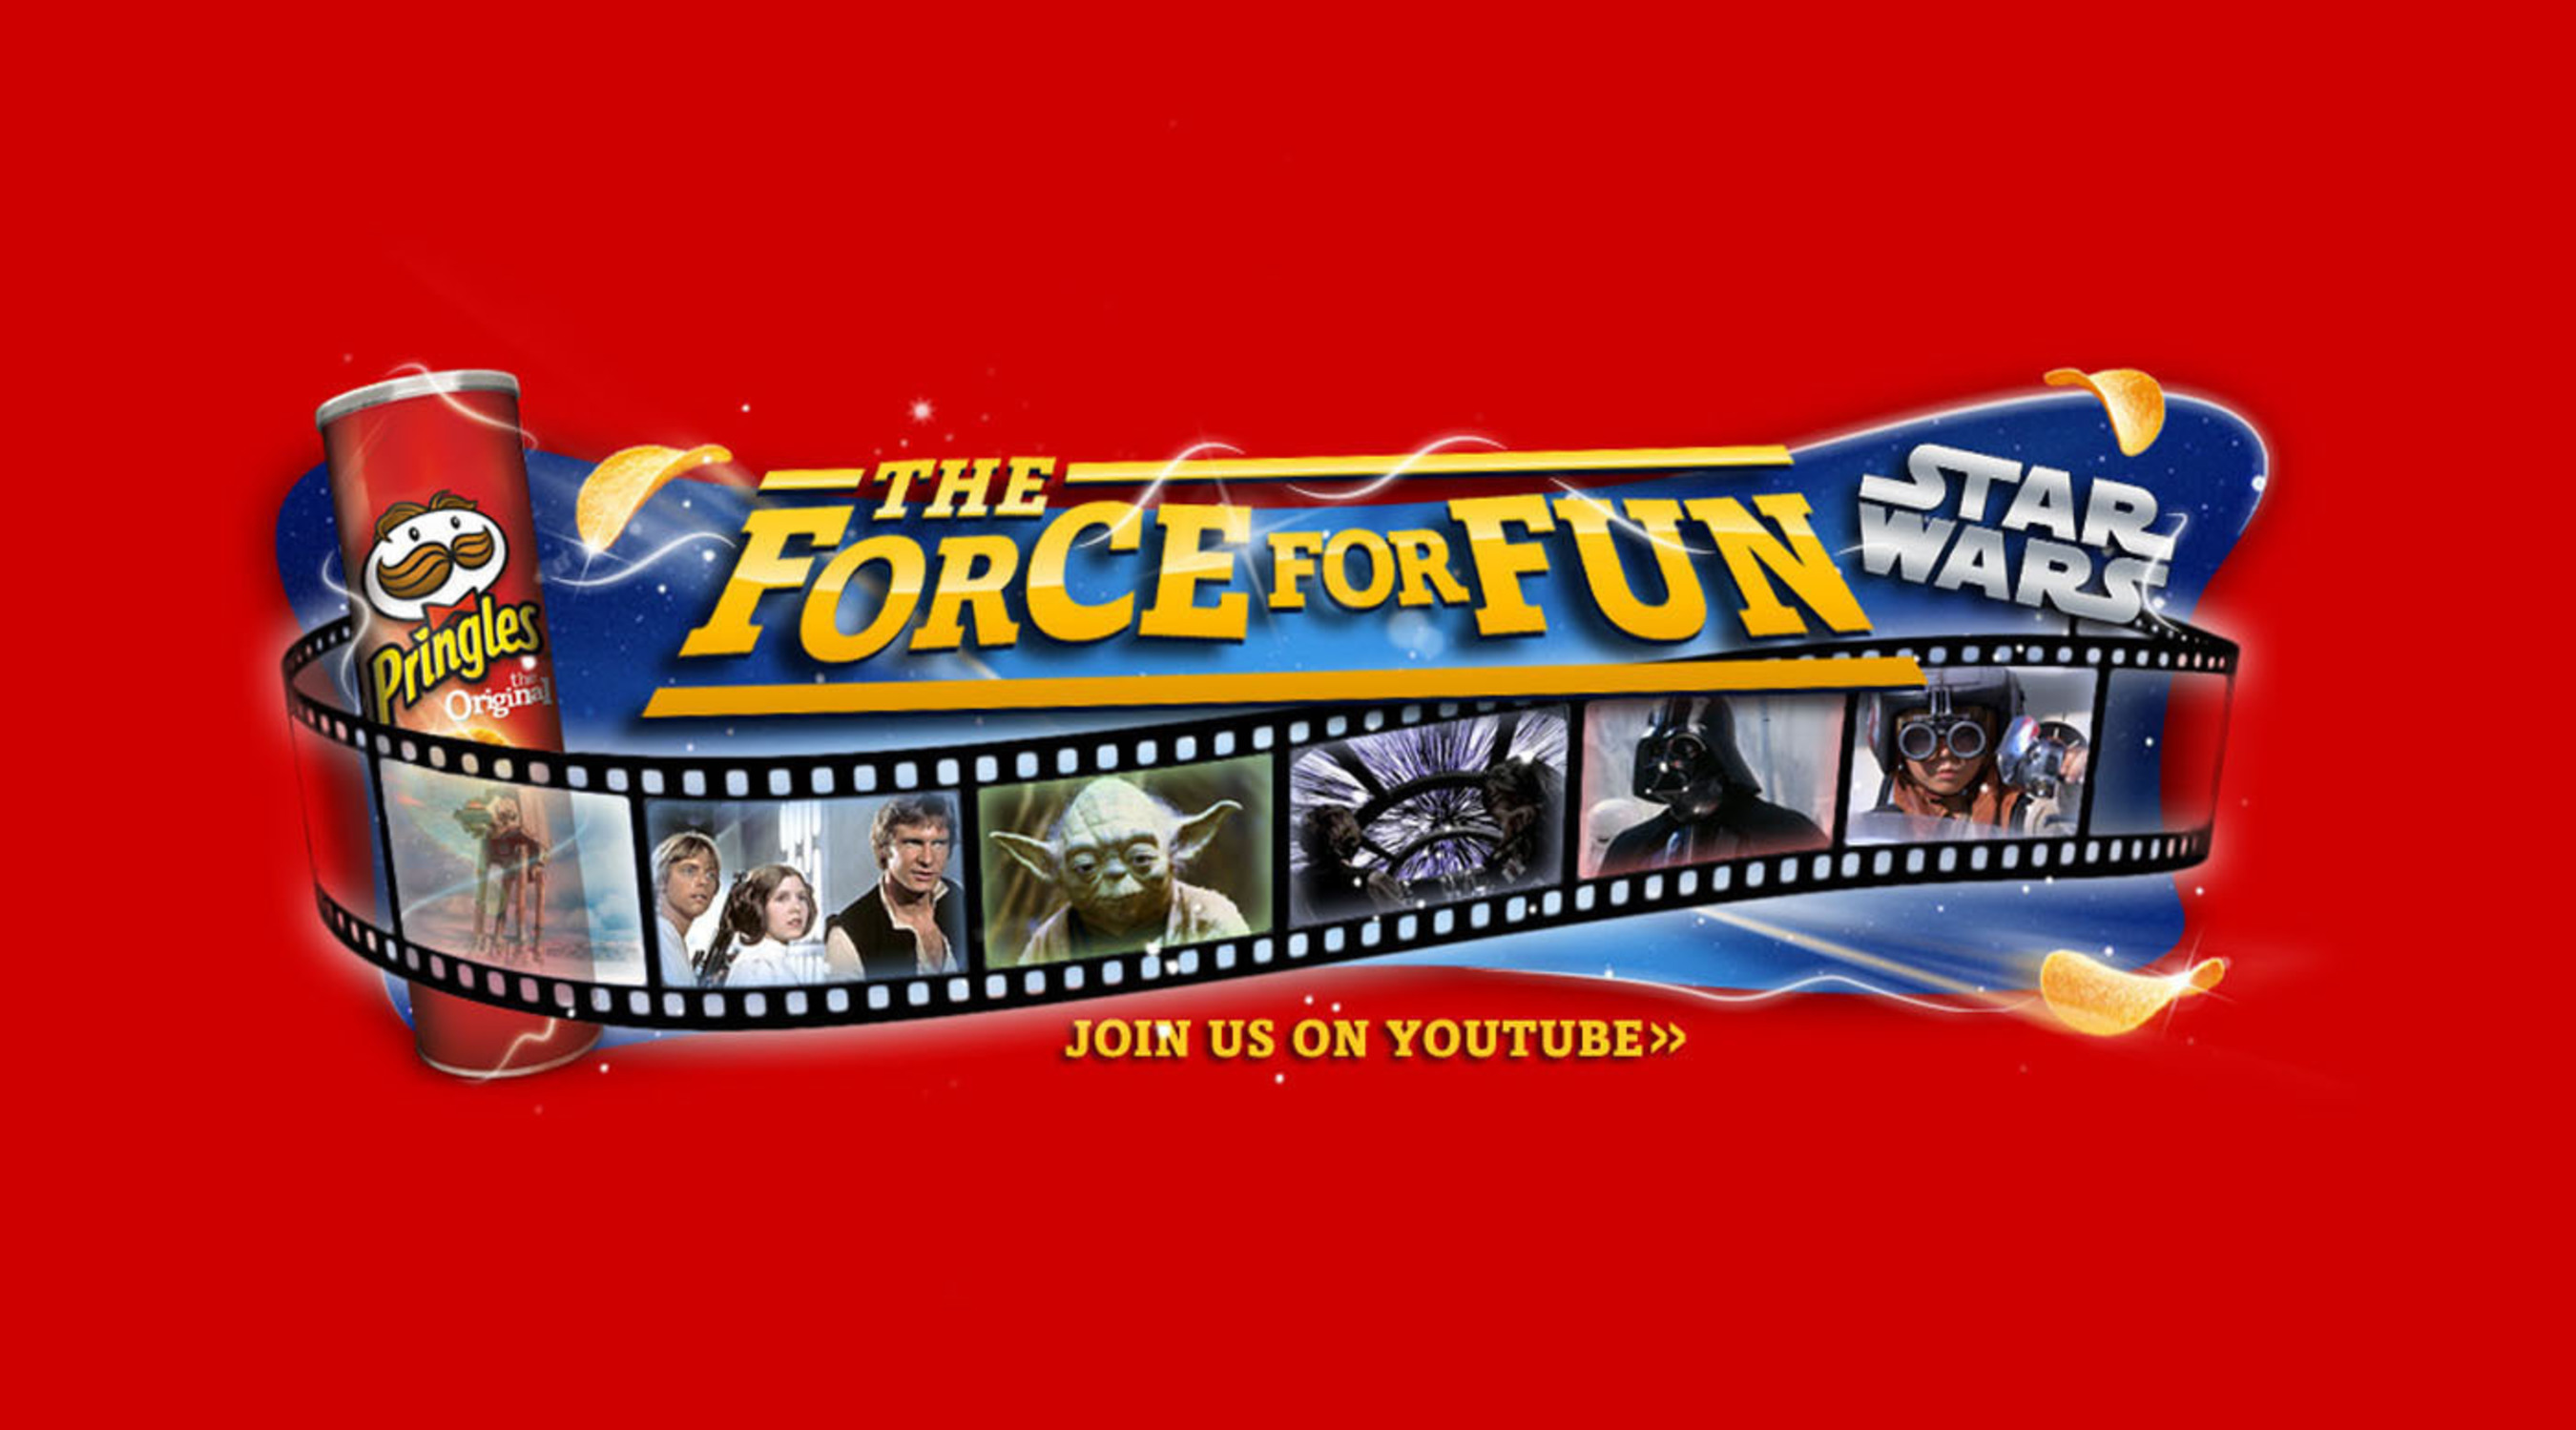 """Visit Youtube.com/Pringles to watch the videos from the Pringles and Star Wars """"The Force For Fun"""" promotion.  (PRNewsFoto/Kellogg Company)"""